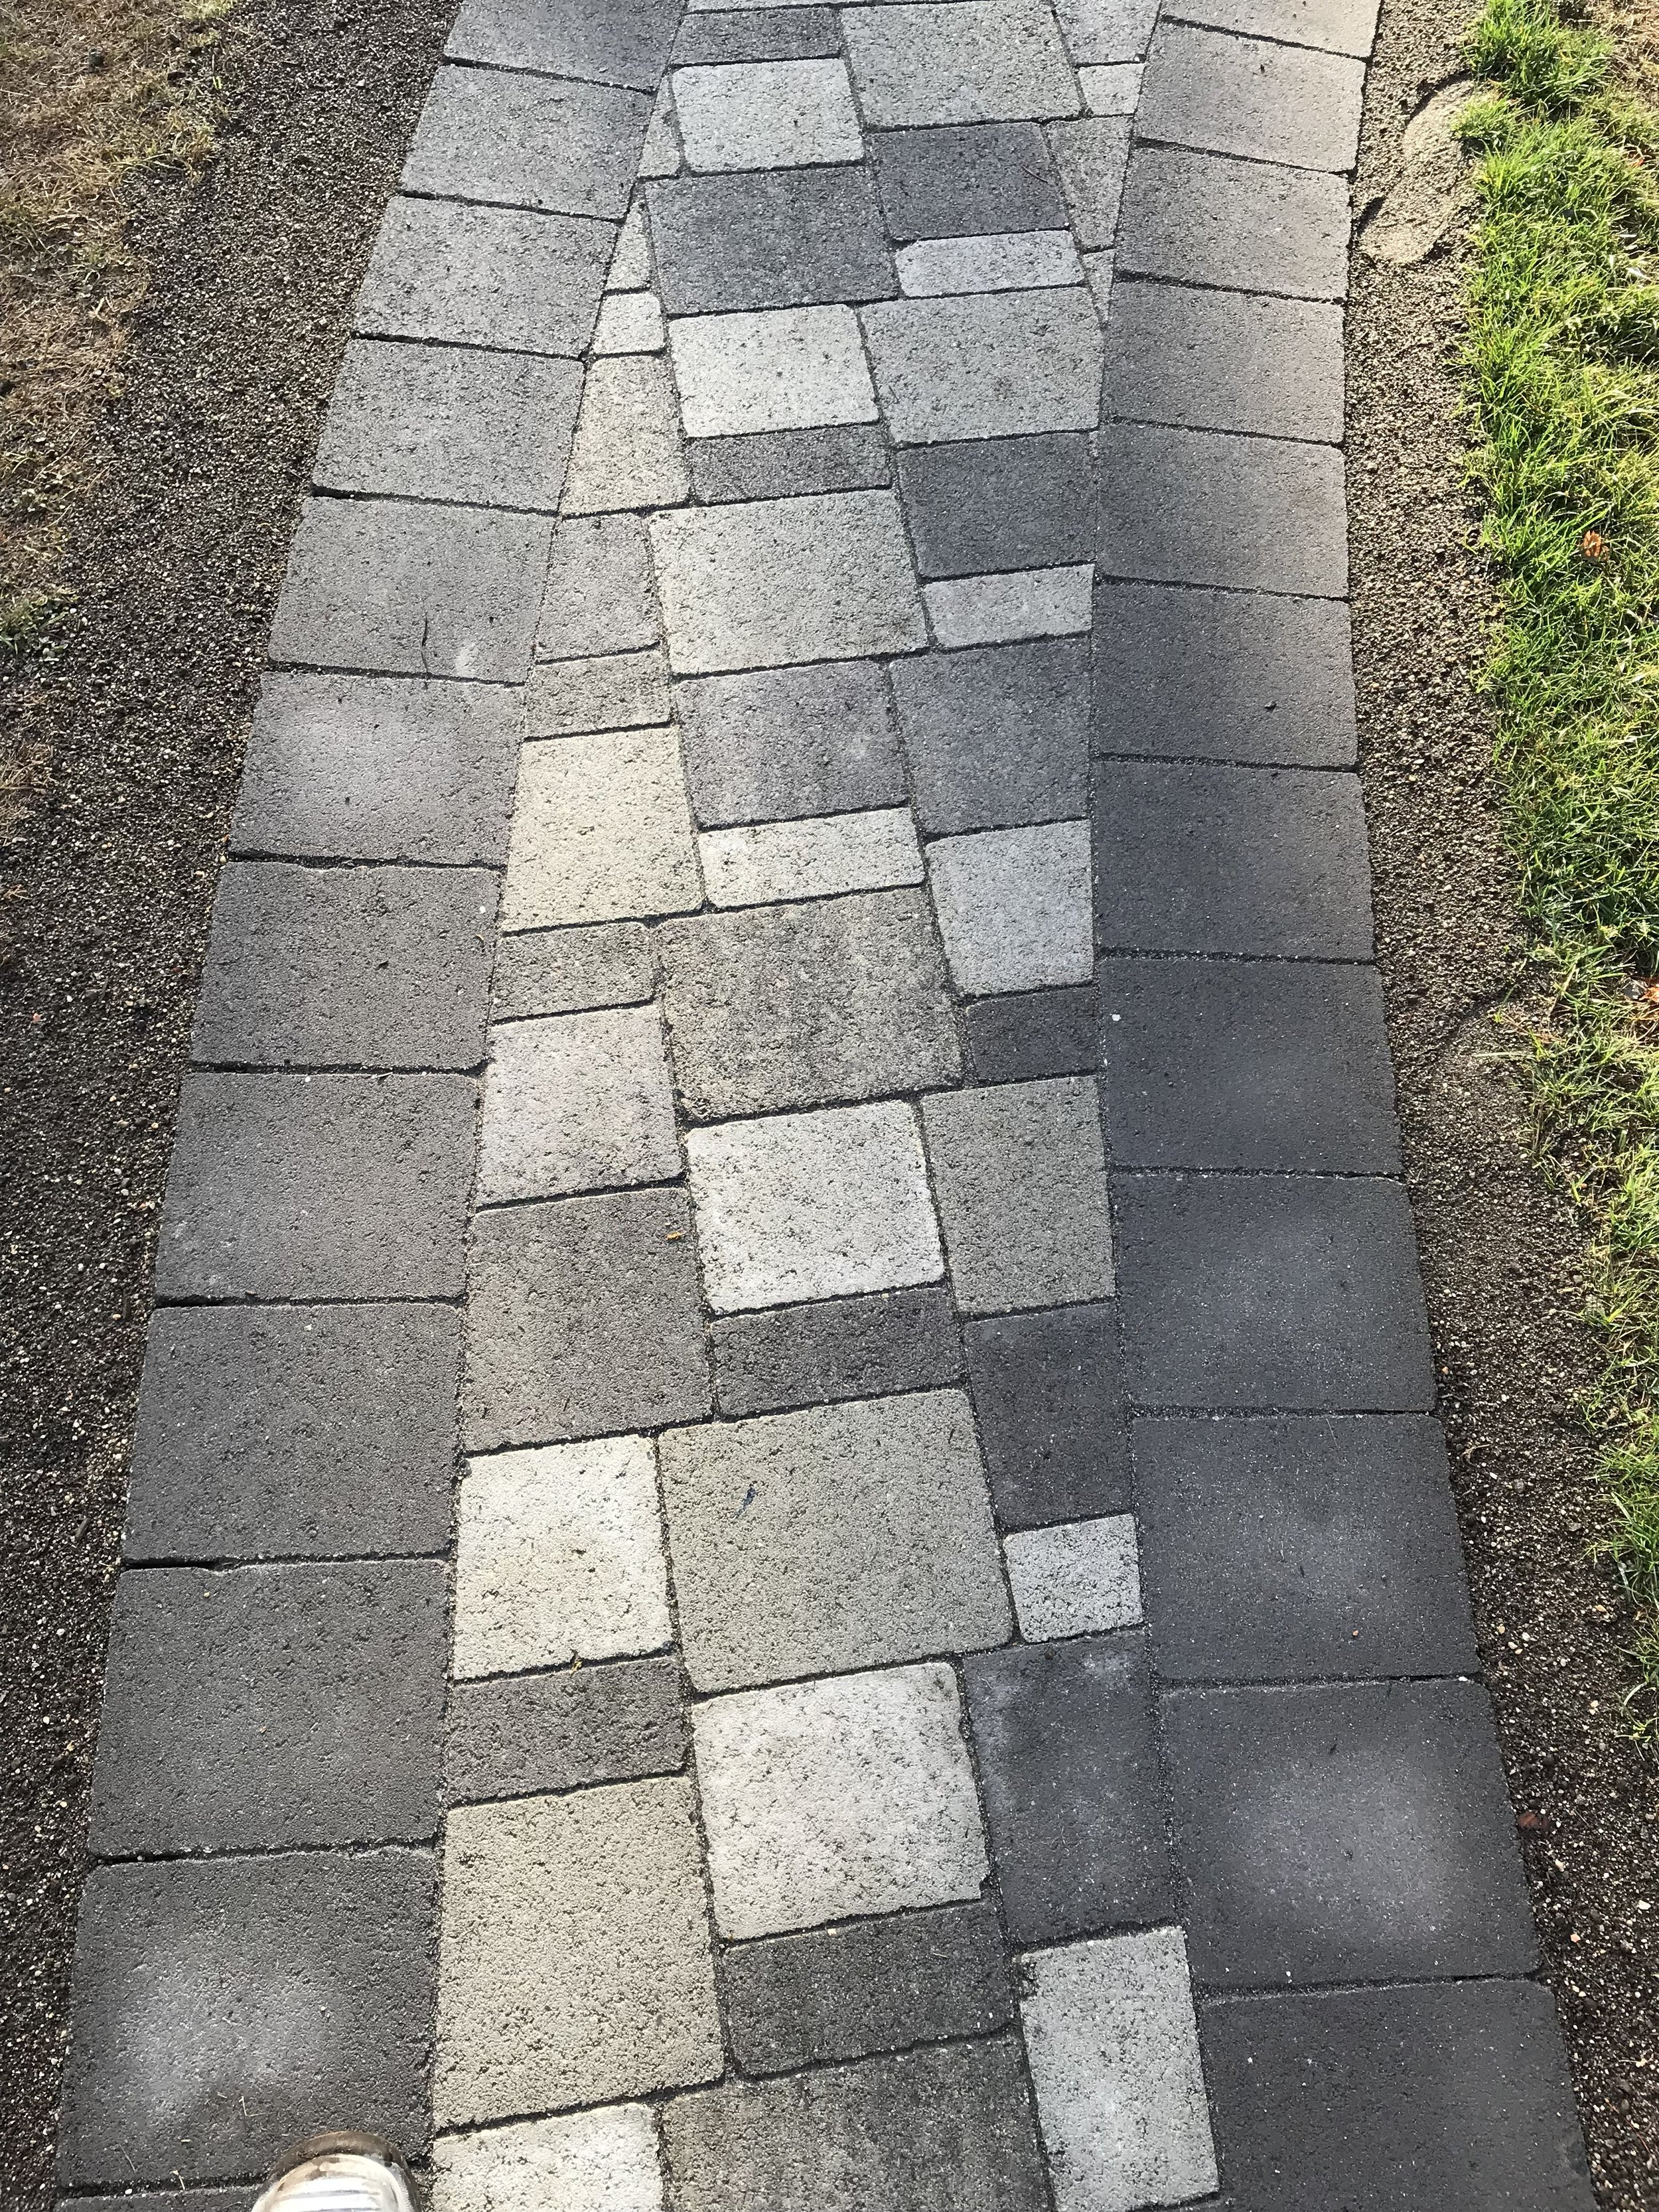 Paving Stones - A great cost effective and versatile product for a patio, walkway, or staircase. Well prepared and installed paving stone surfaces create a crisp, clean, easy to maintain look.